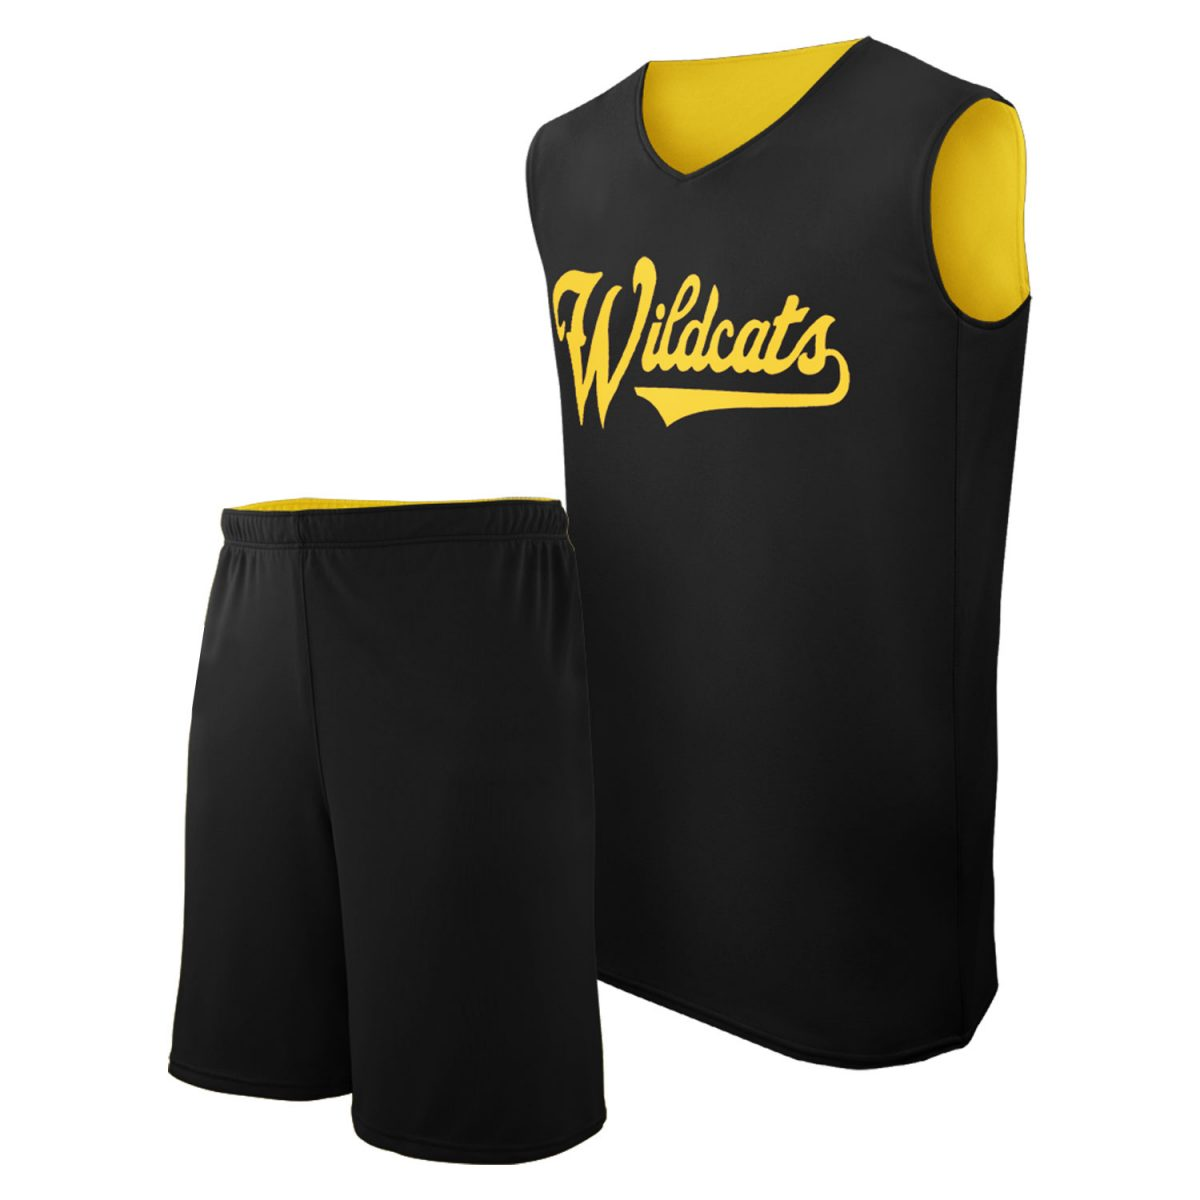 Boys Basketball Uniforms Manufacturers in Nanded